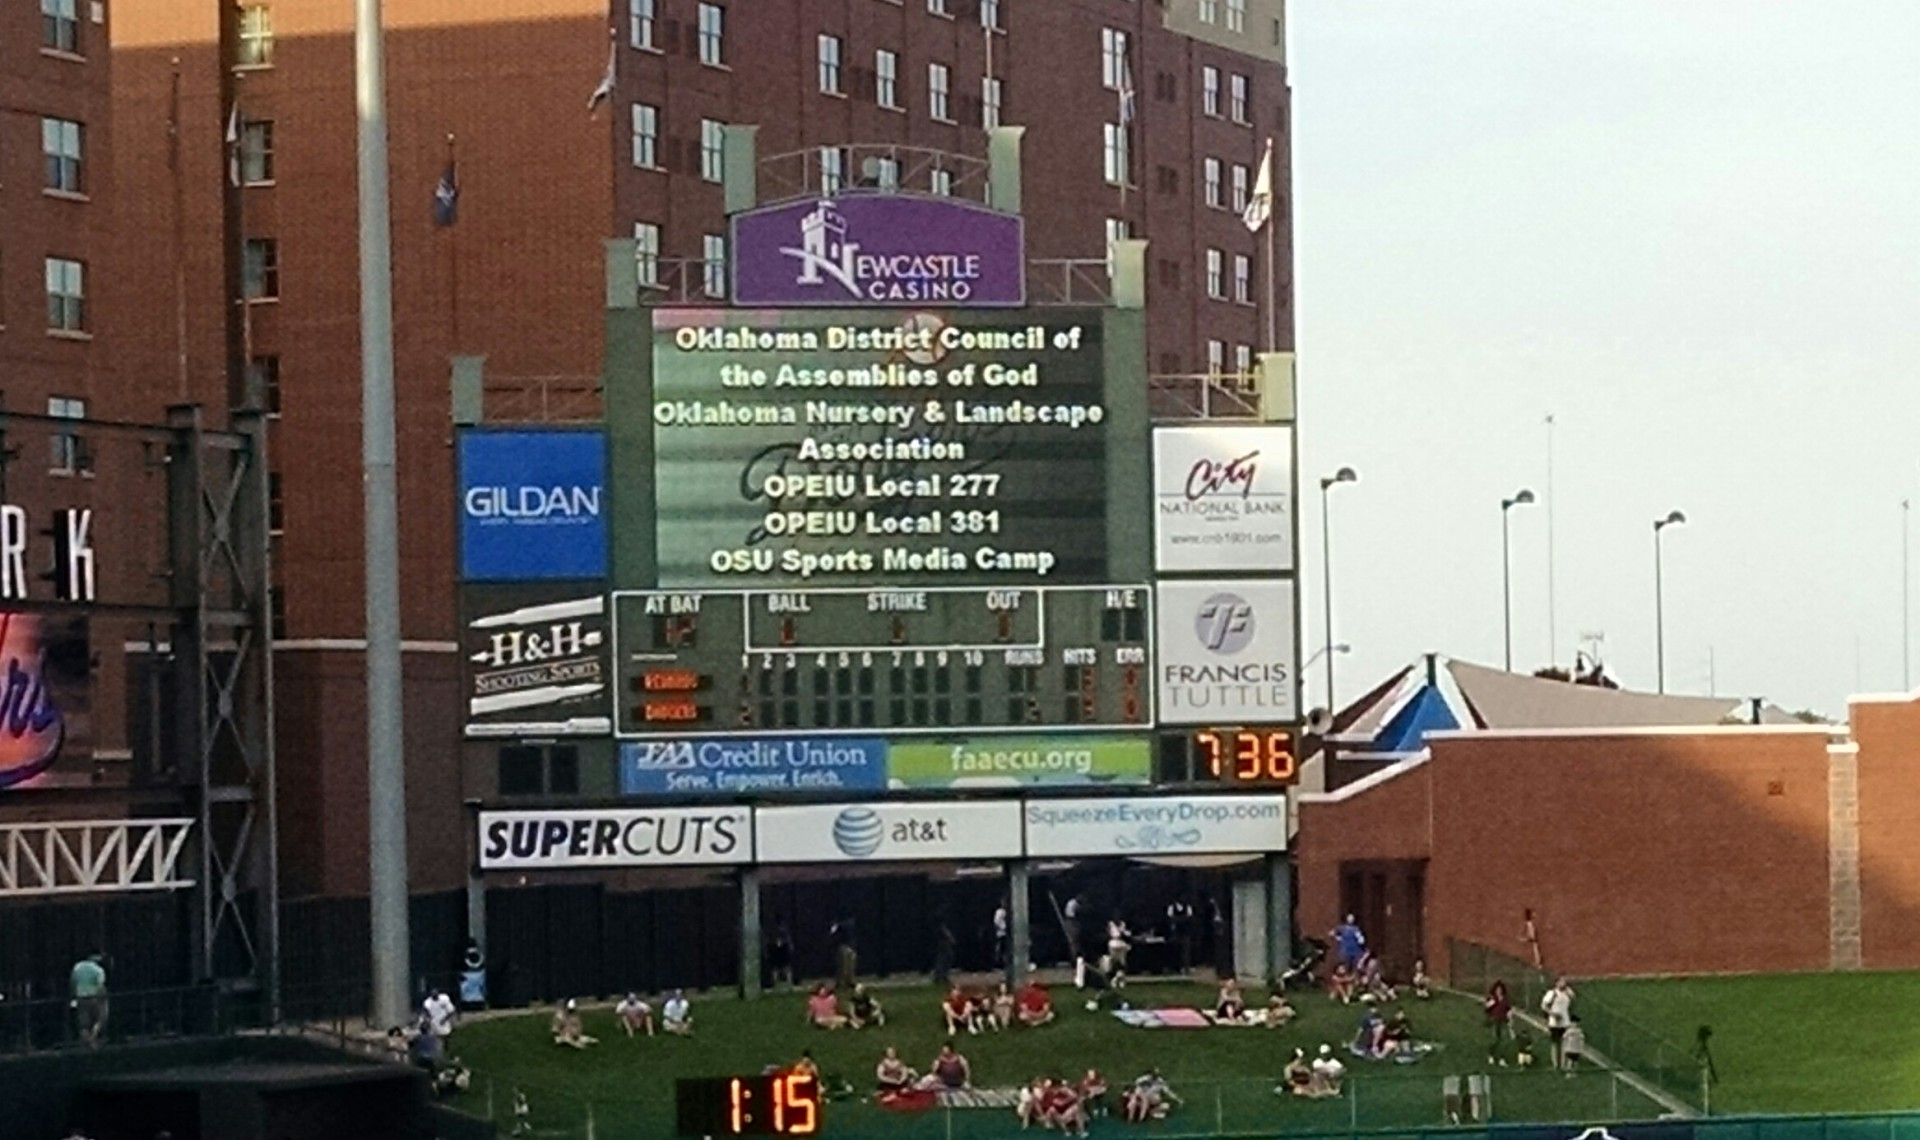 June 2015: OKC Dodgers Baseball Game